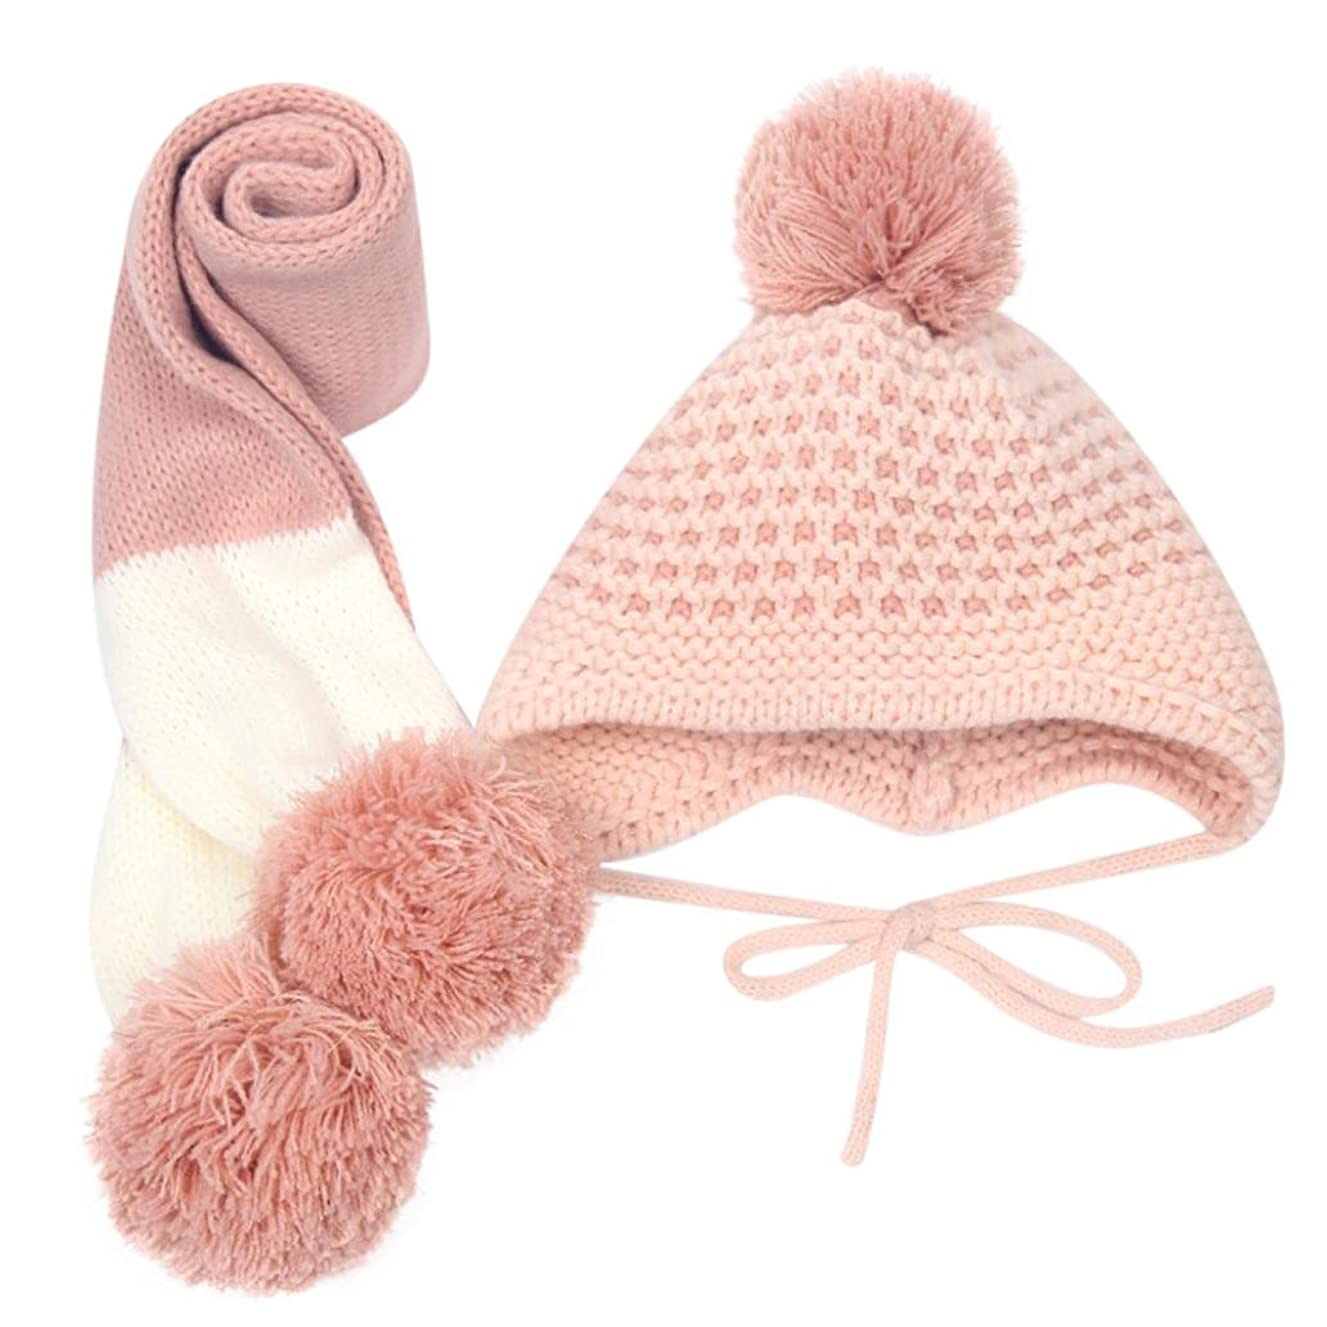 LNGRY 6-12M Baby Kids Girl Boy Winter Warm Cotton Coif Hood Scarf Caps Hats Set